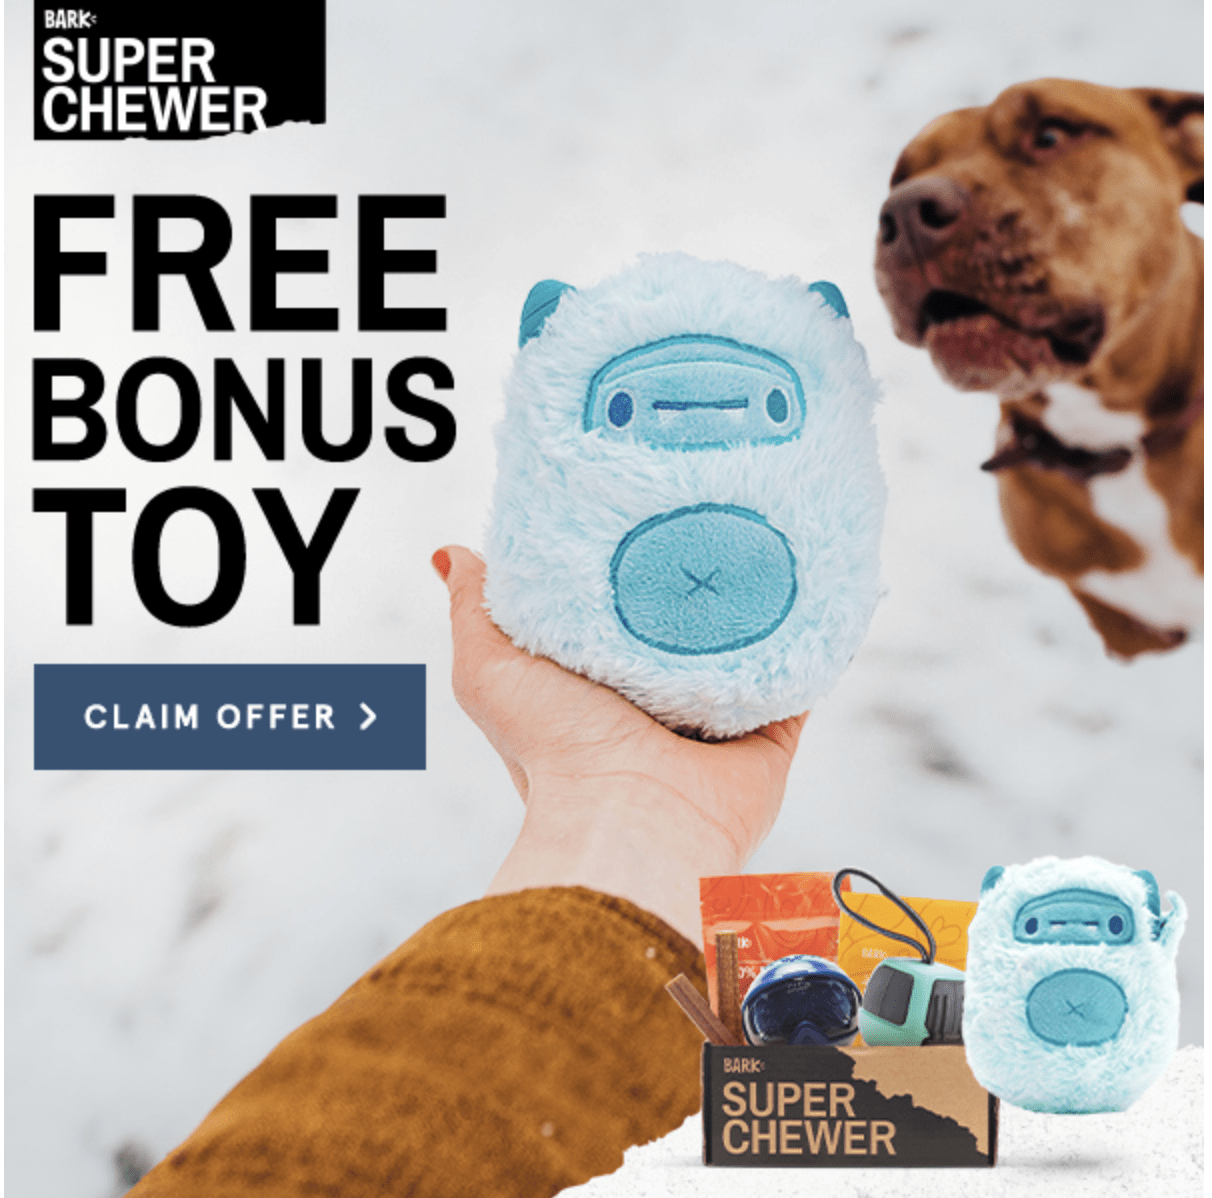 BarkBox Super Chewer Coupon Code – FREE Ice Beast Toy